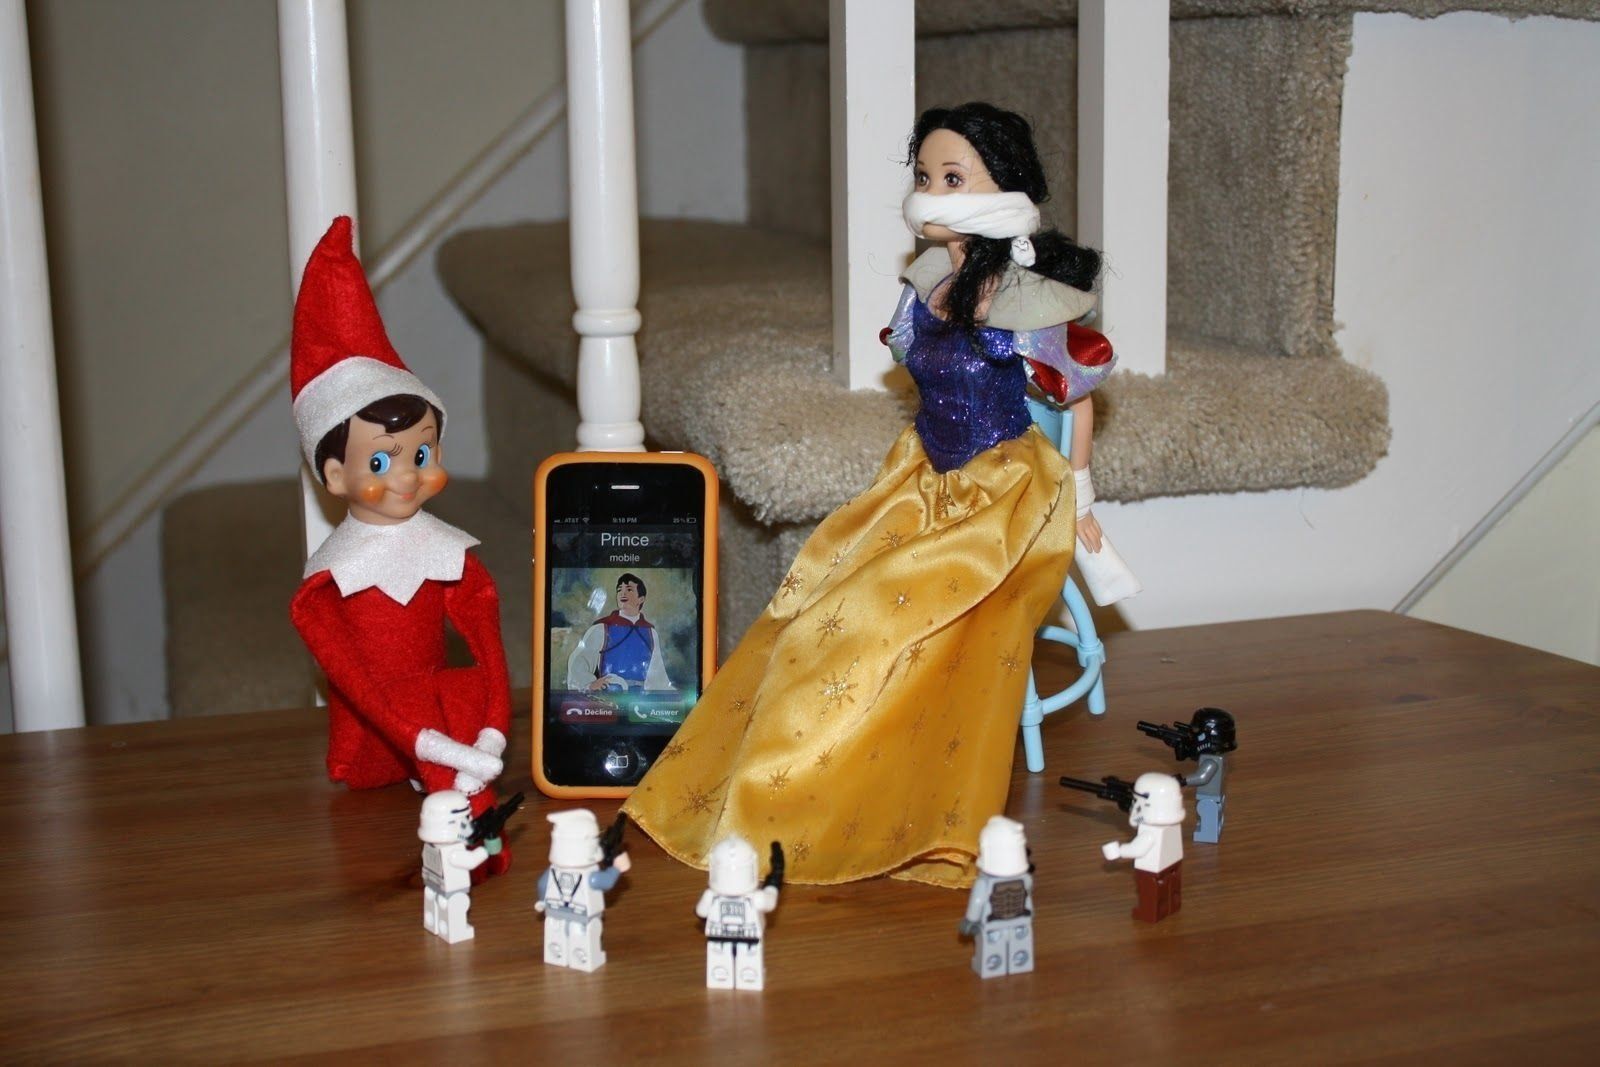 10 Stylish Dirty Elf On The Shelf Ideas creepy elf snow white kidnapped christmaslandon benderelf 2020